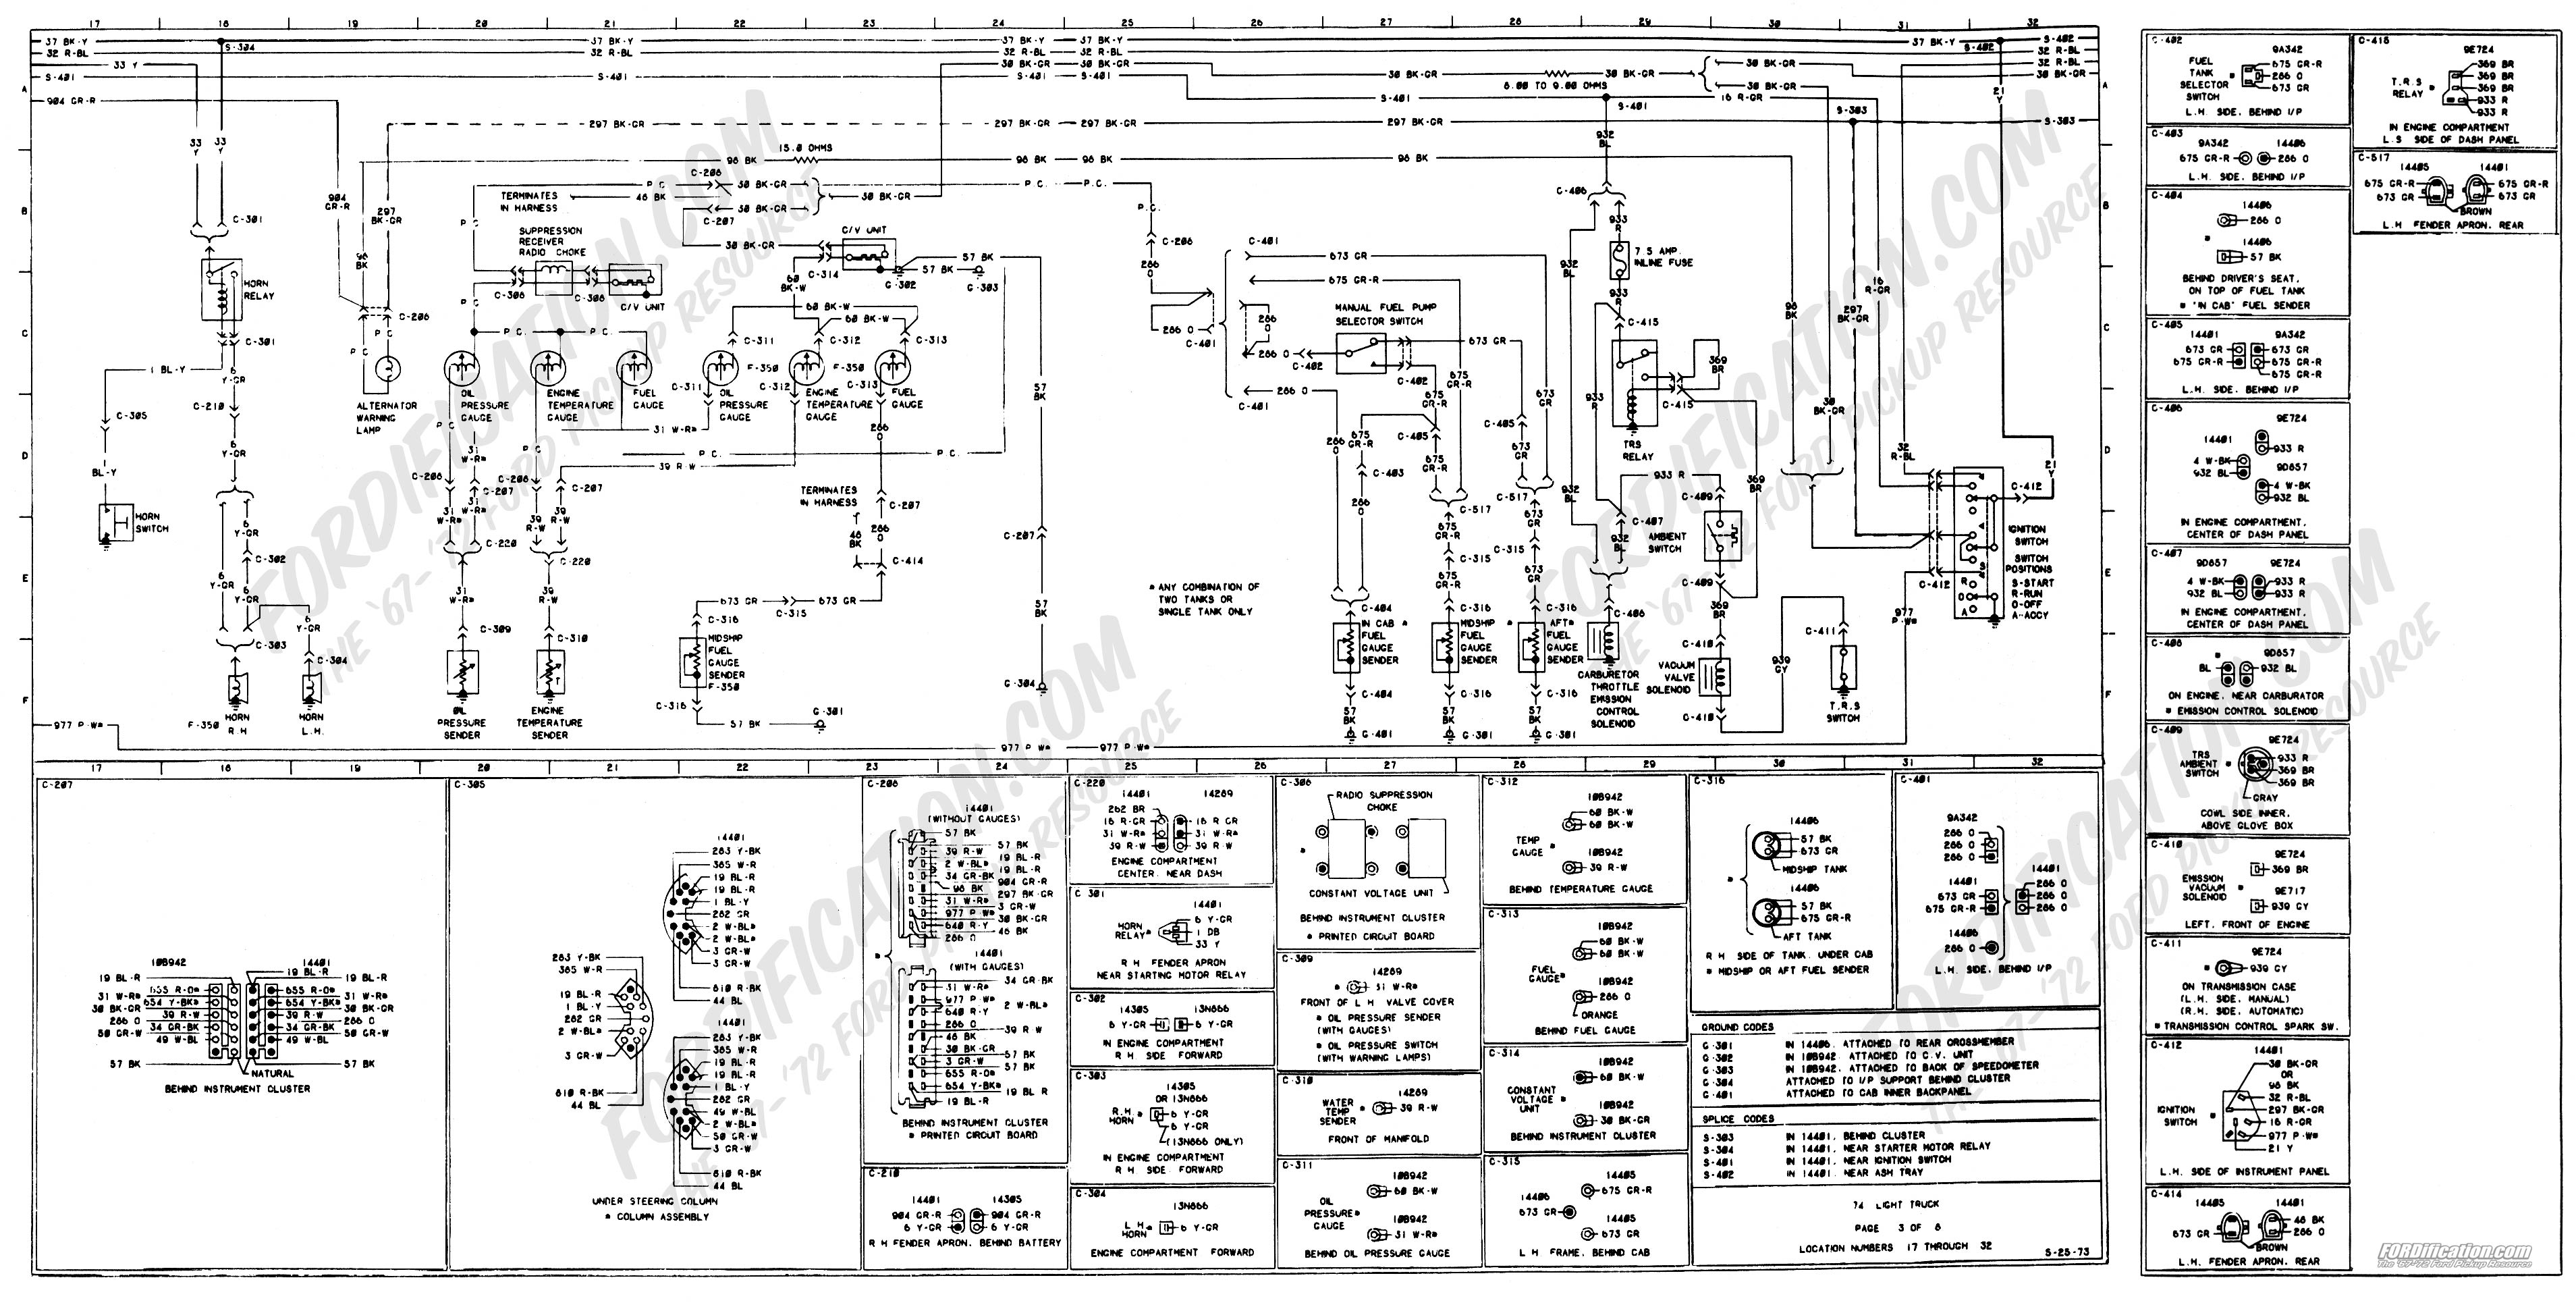 1973 1979 Ford Truck Wiring Diagrams Schematics 1974 Honda Cb 550 Diagram Page 03